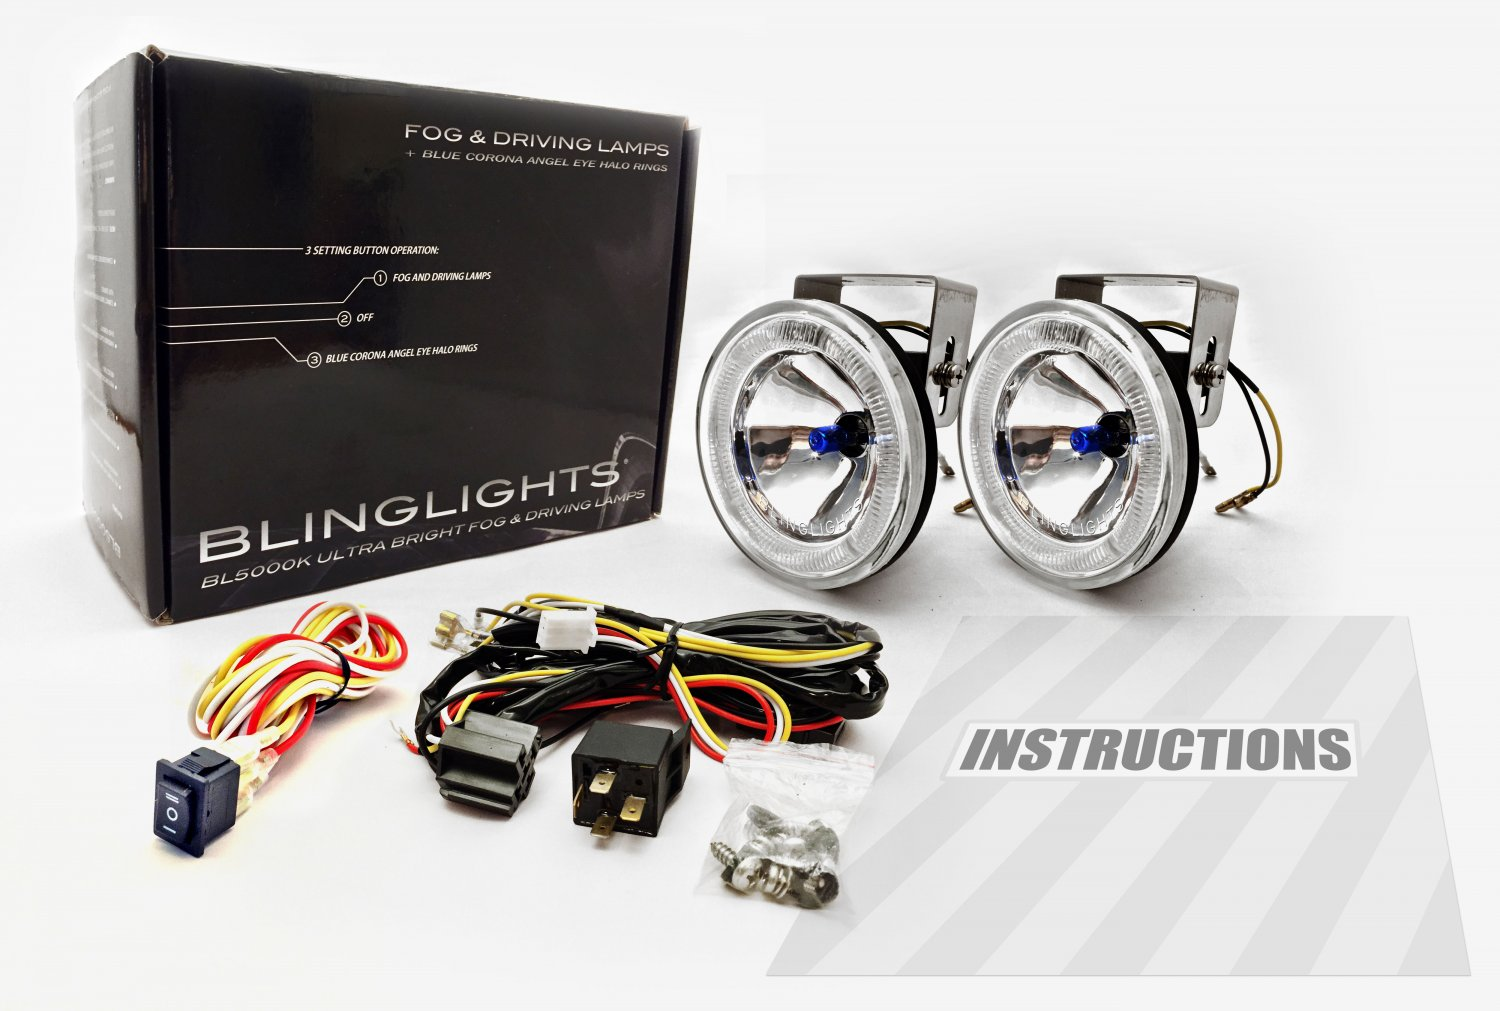 BlingLights BL5000K 4-Inch Round Blue Halo Angel Eye Fog Driving Lamp Kit